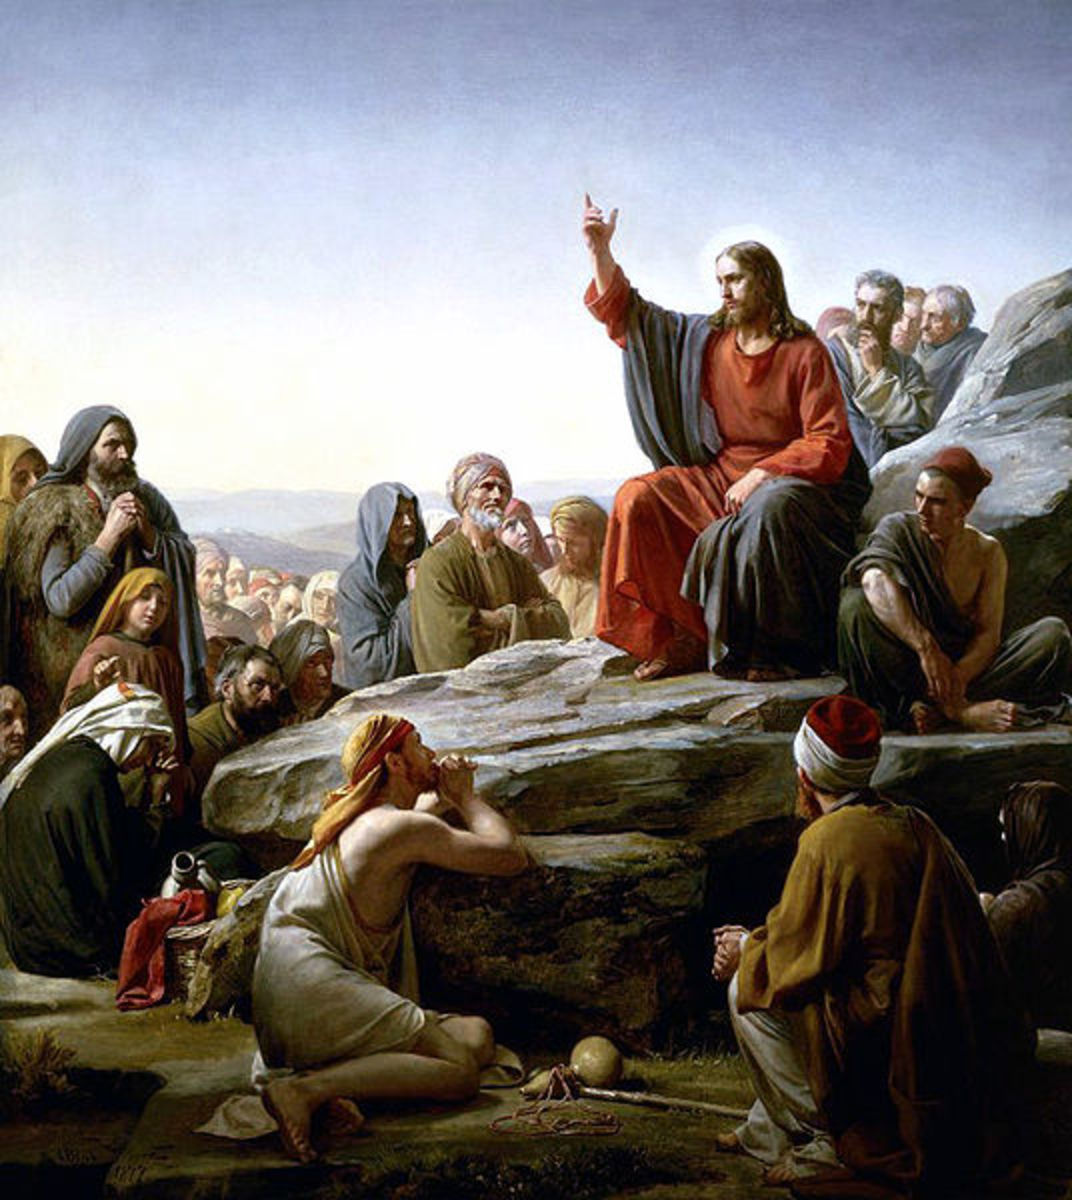 The founder of Christianity. A painting of the Sermon on the Mount, by nineteenth century artist